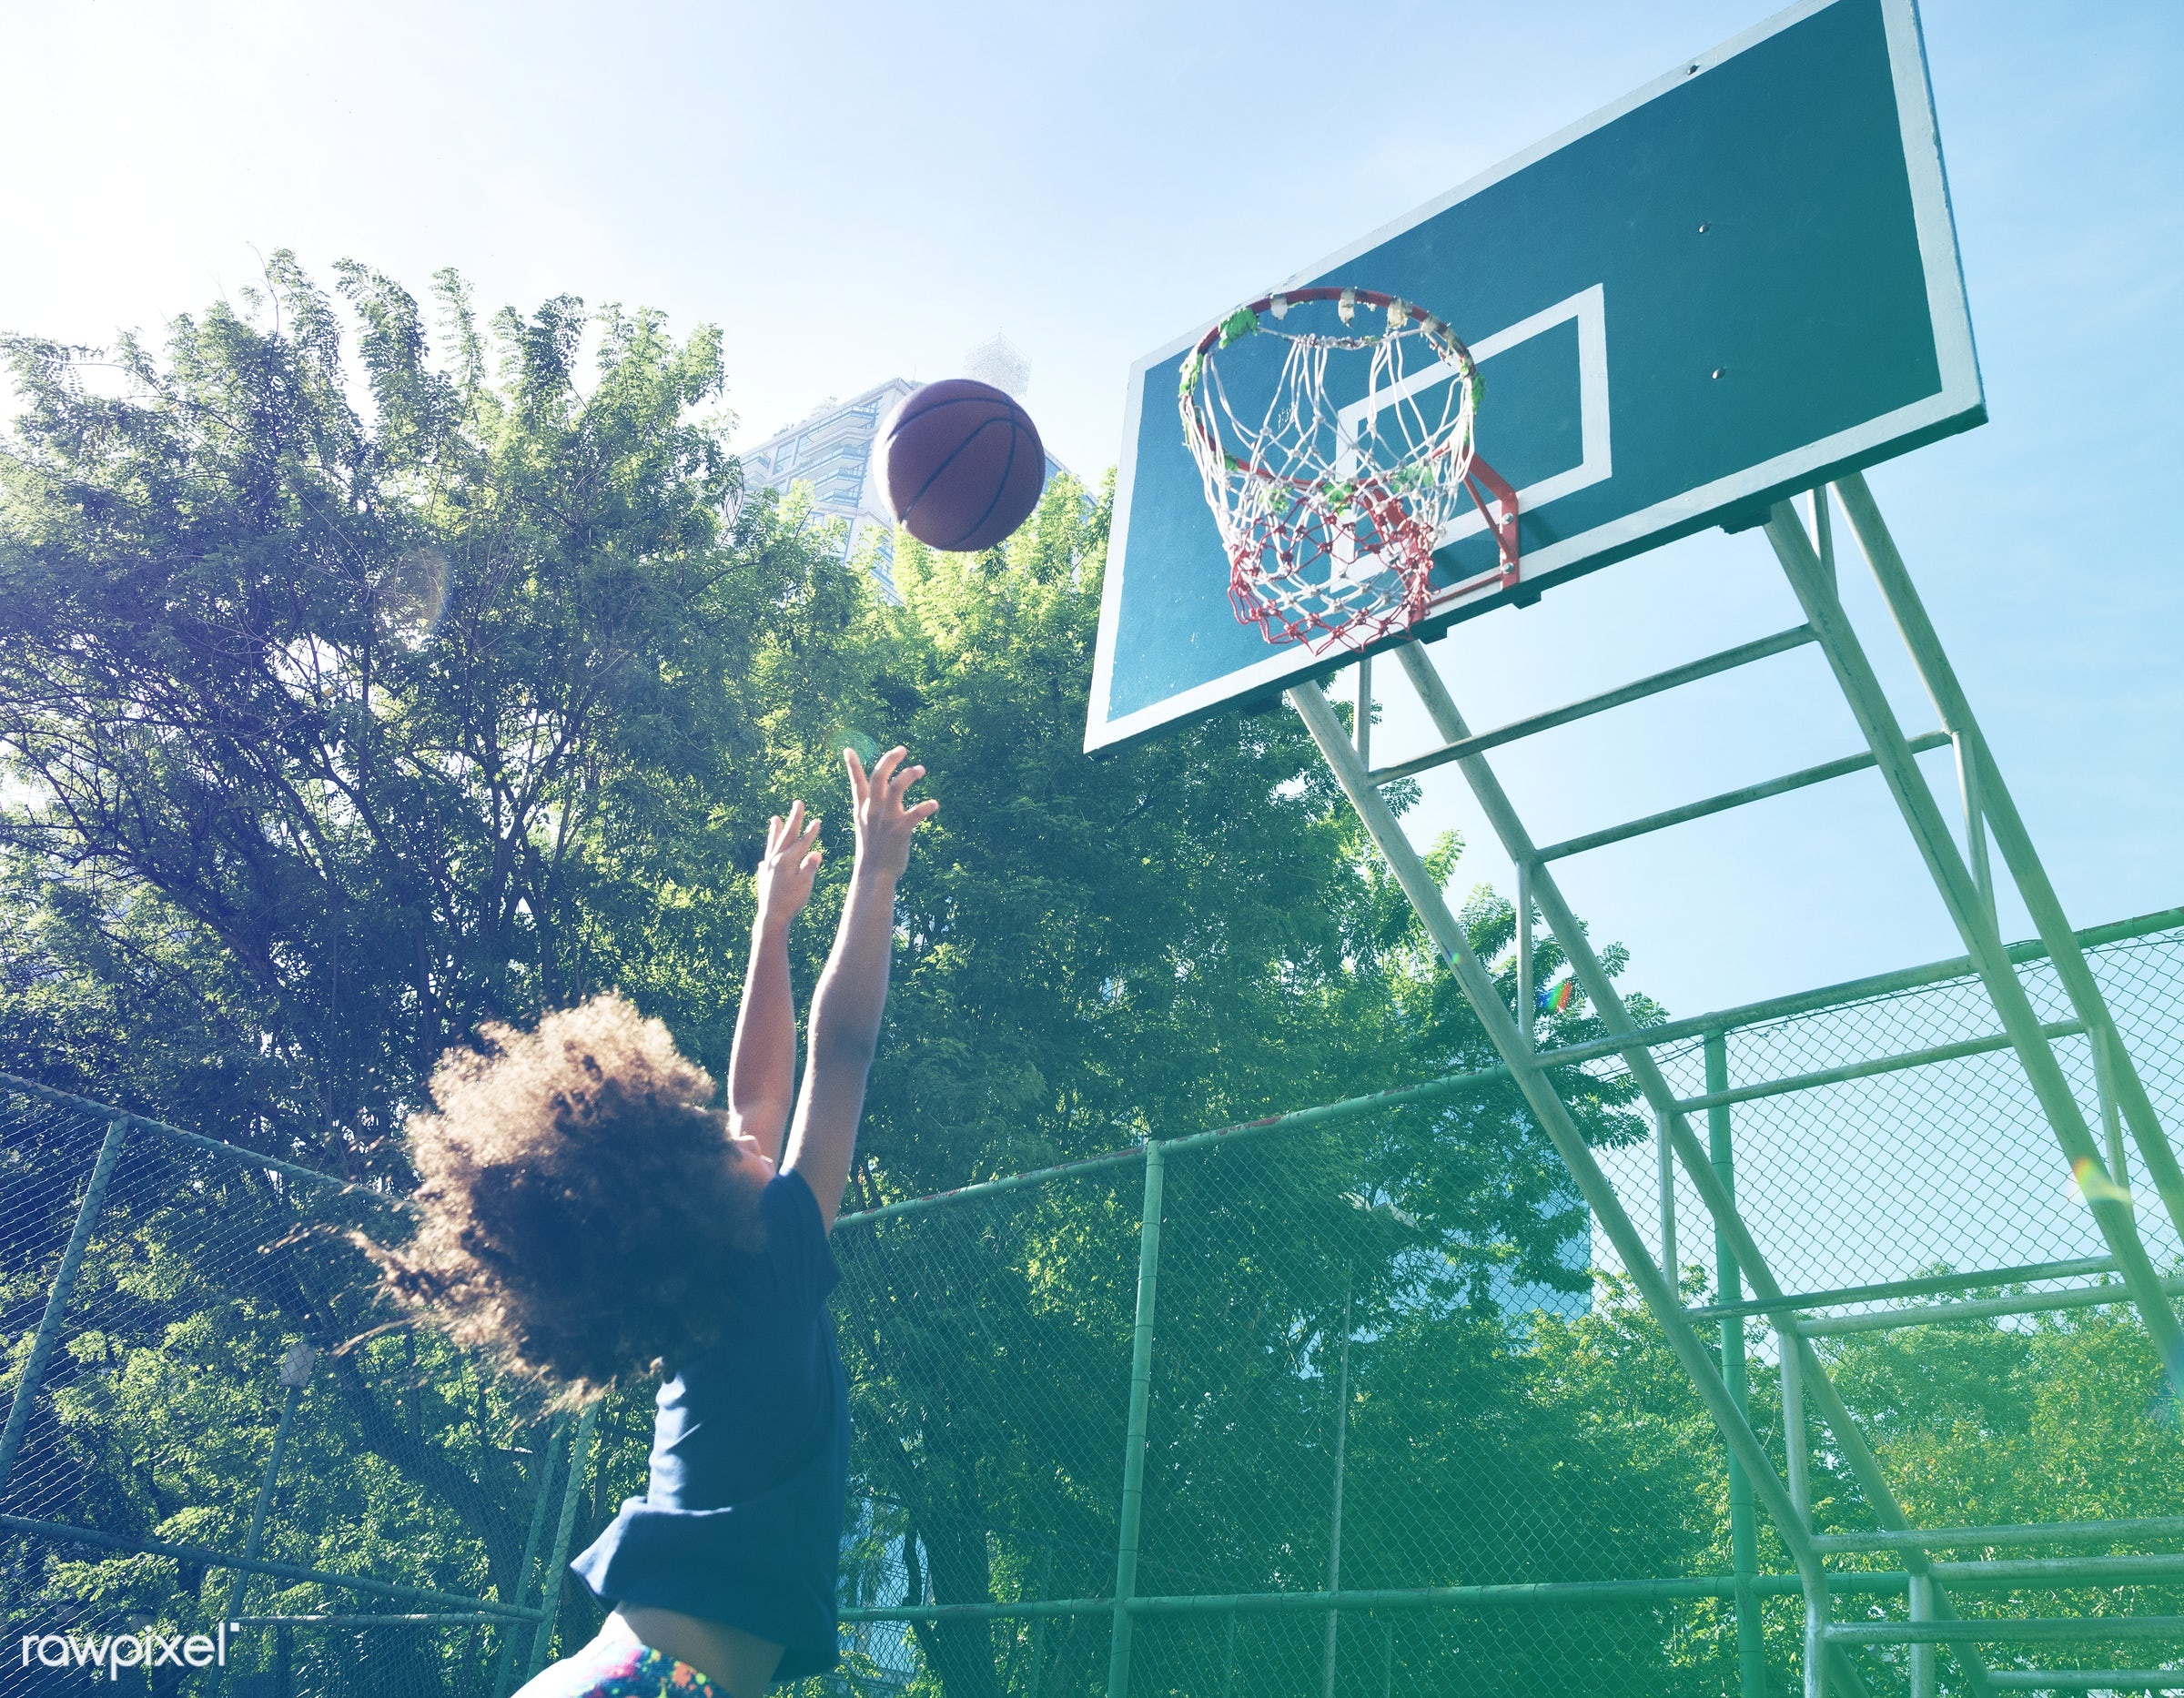 basketball, athletics, player, african, street, court, exercise, recreation, kid, child, playing, girl, arena, family,...